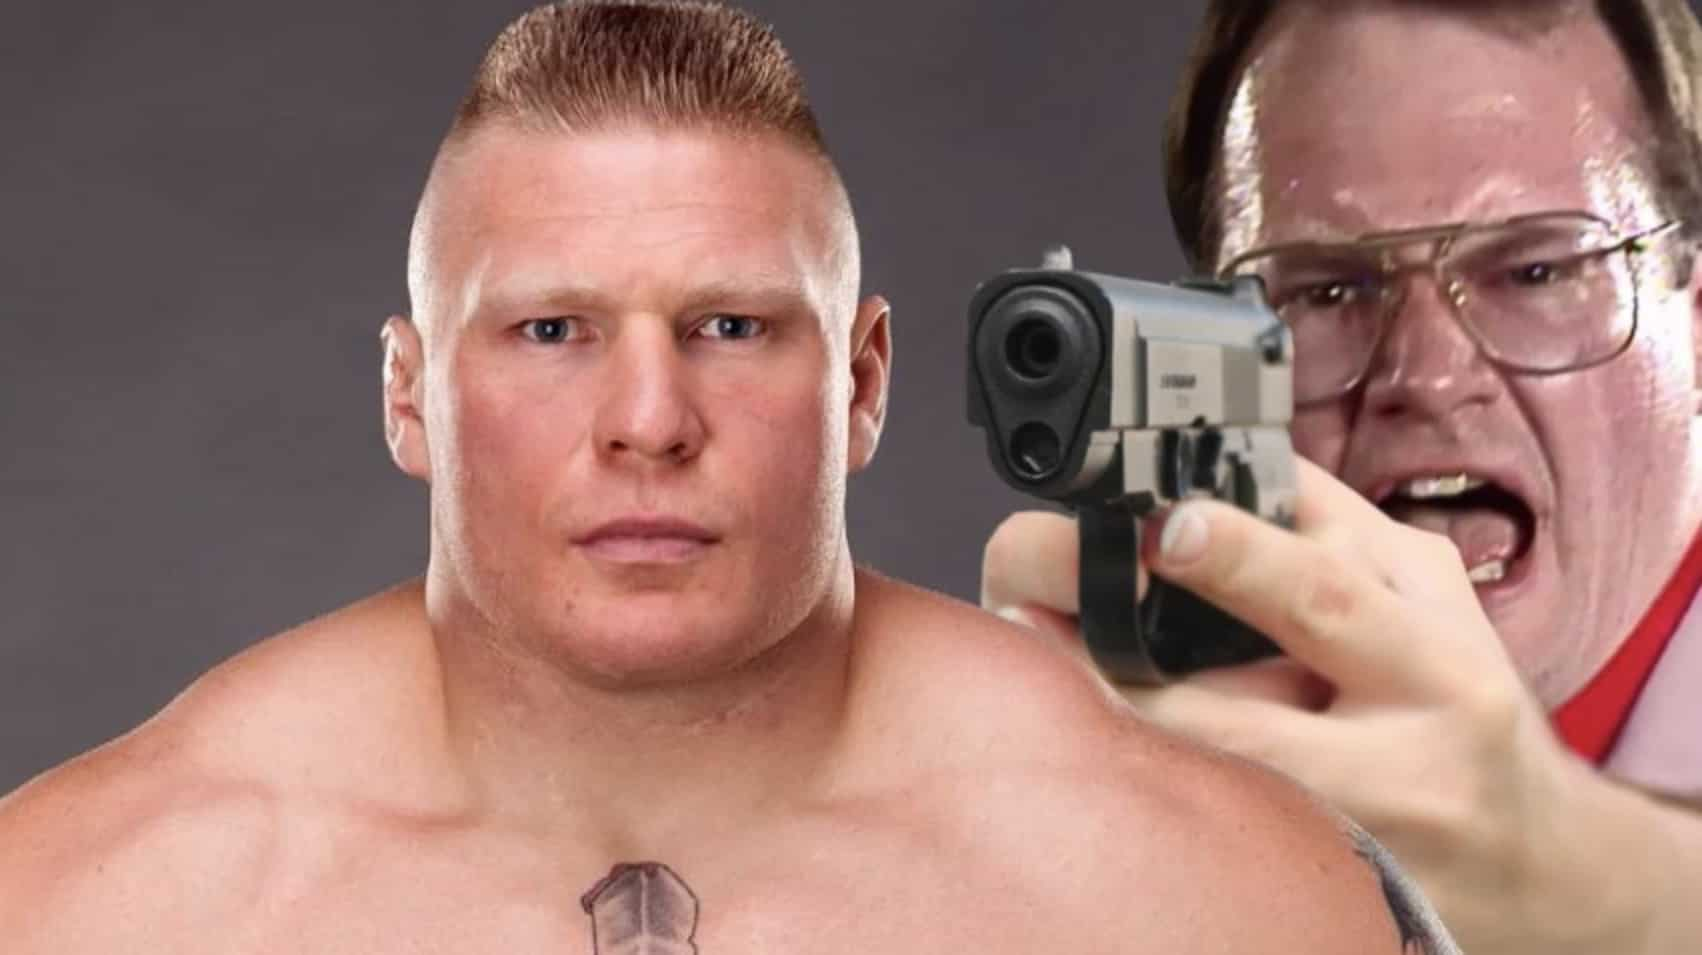 Jim Cornette shares the story of the time he threatened Brock Lesnar with a gun back during Lesnar's OVW days